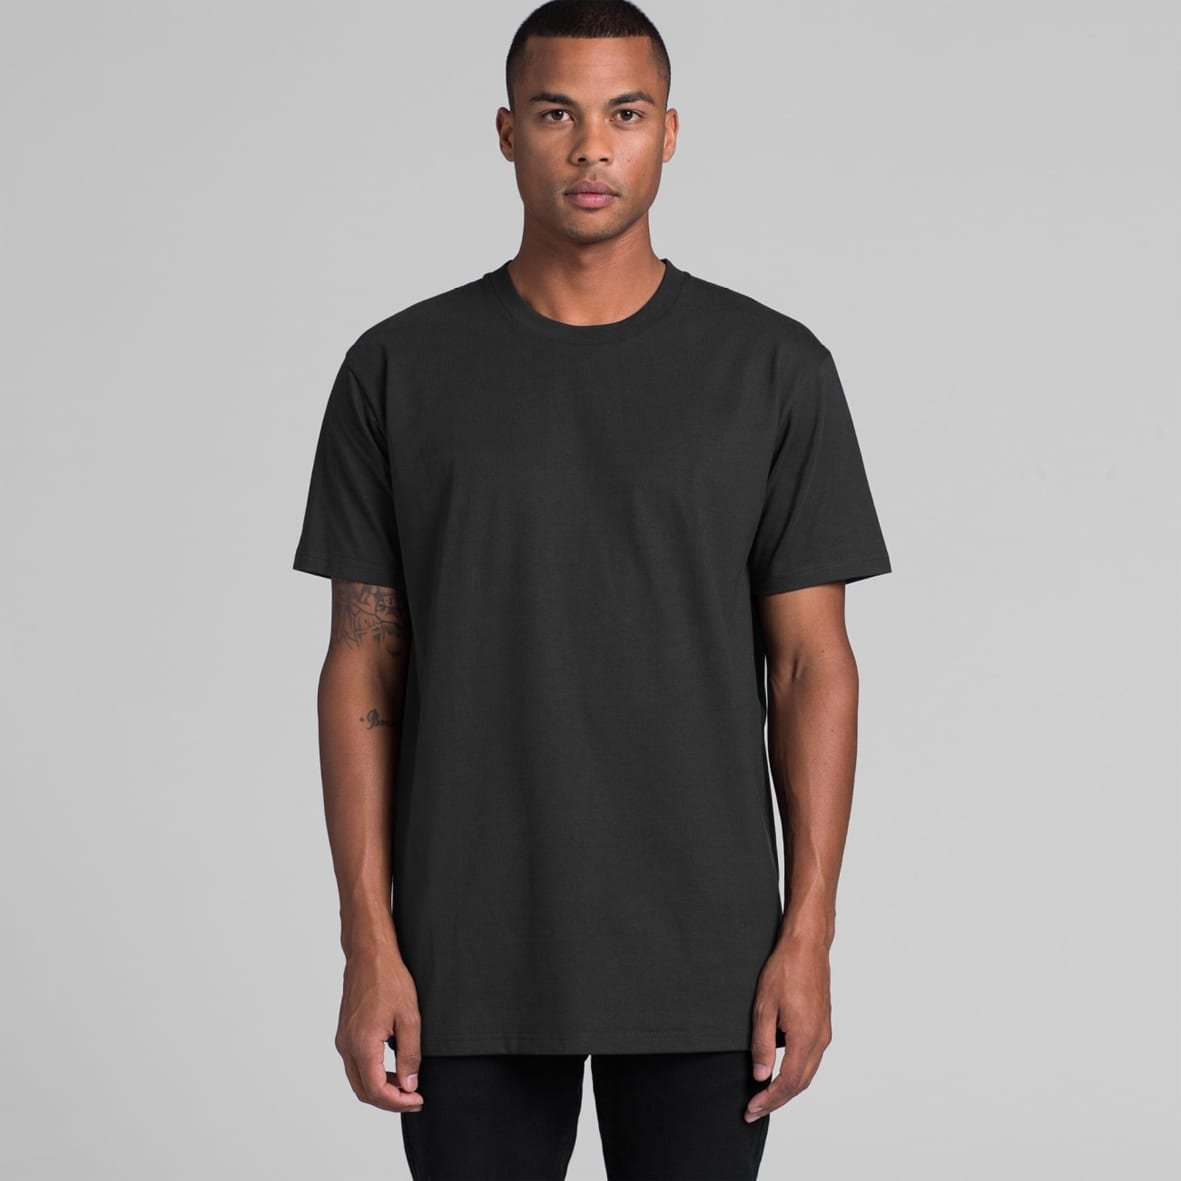 AS 5026 Men's classic tee